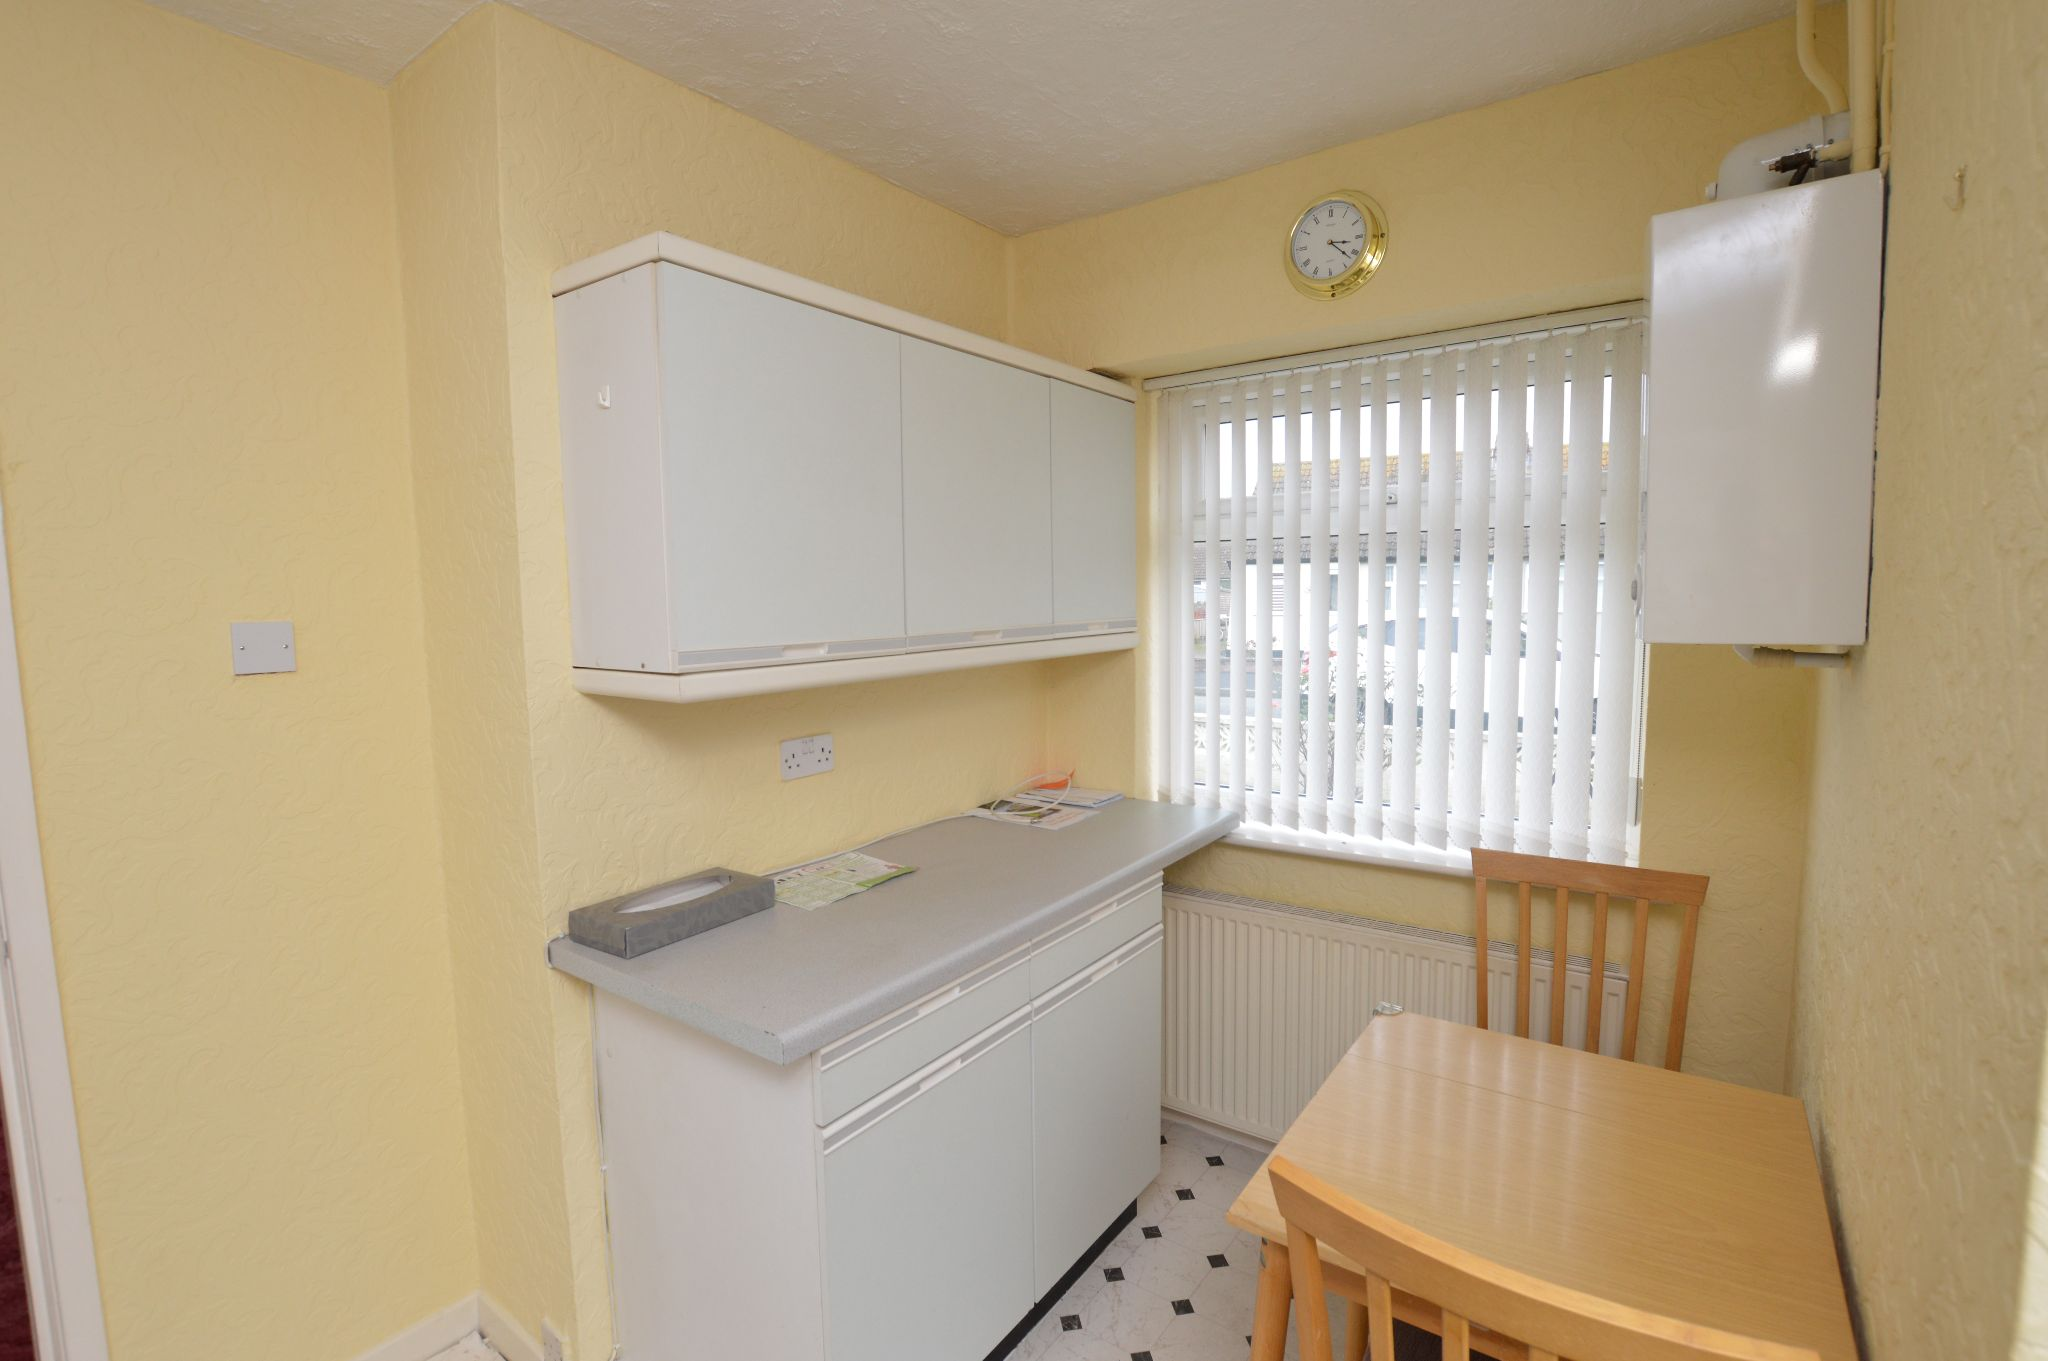 2 bedroom semi-detached bungalow For Sale in Abergele - Kitchen View 3